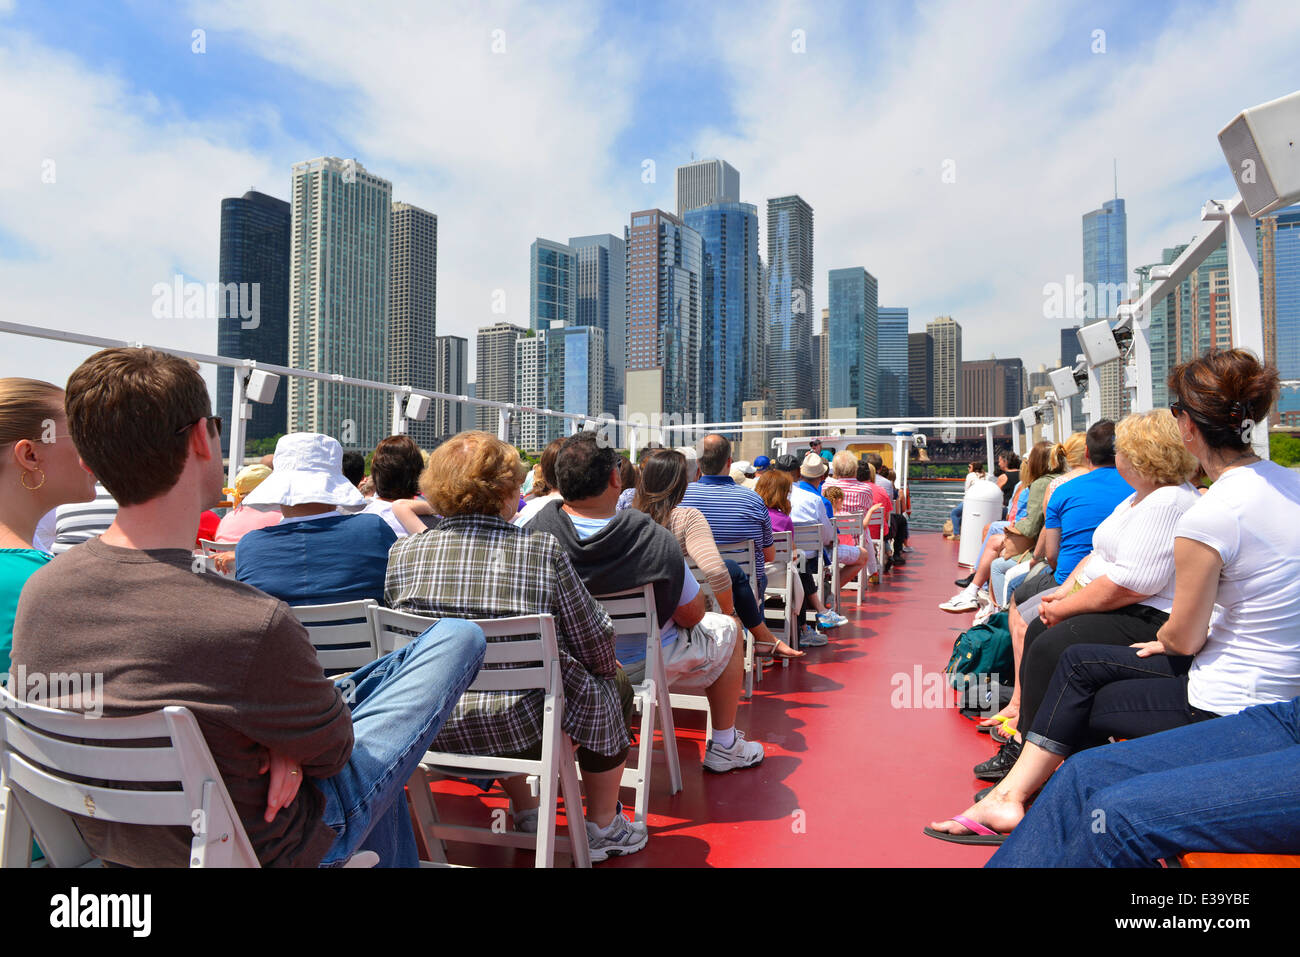 River Cruise Along The Chicago River, City Tour, Tourists